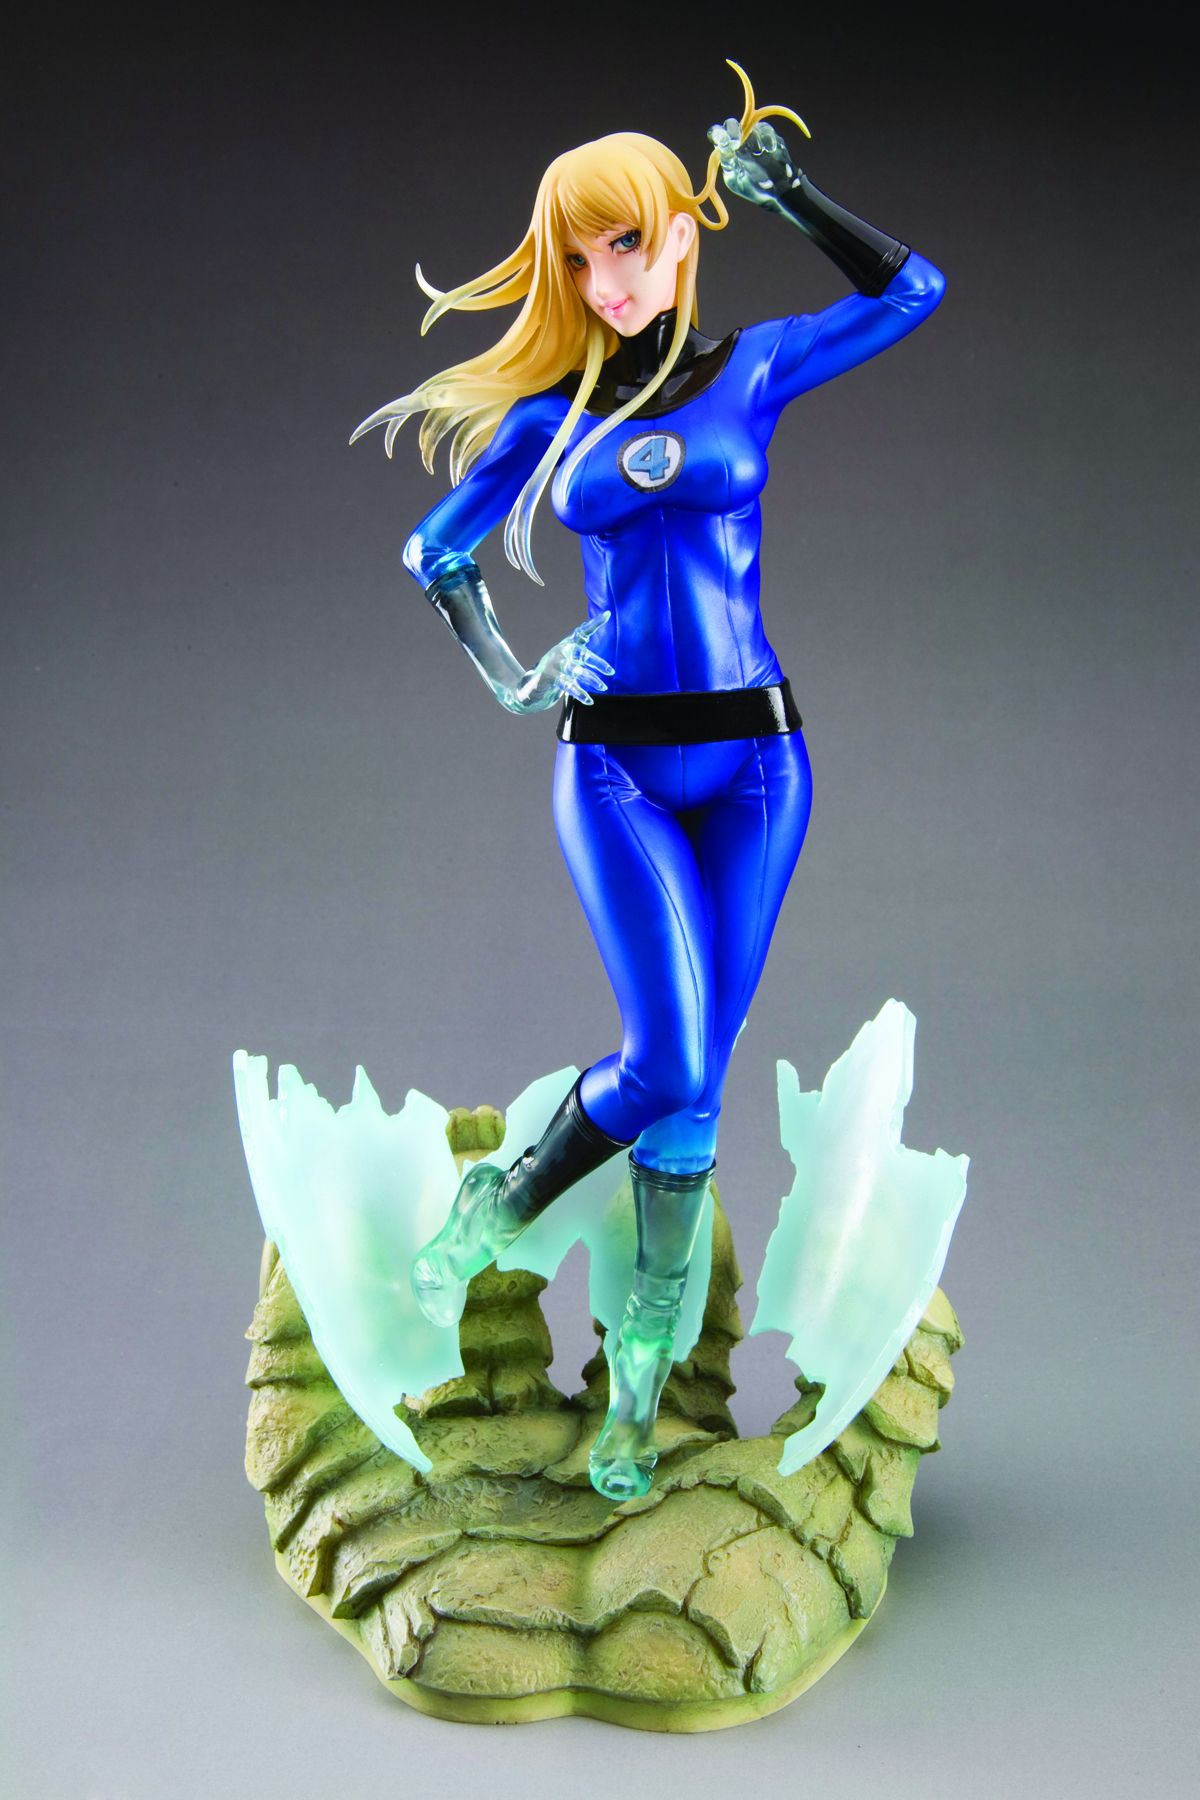 MARVEL INVISIBLE WOMAN BISHOUJO STATUE